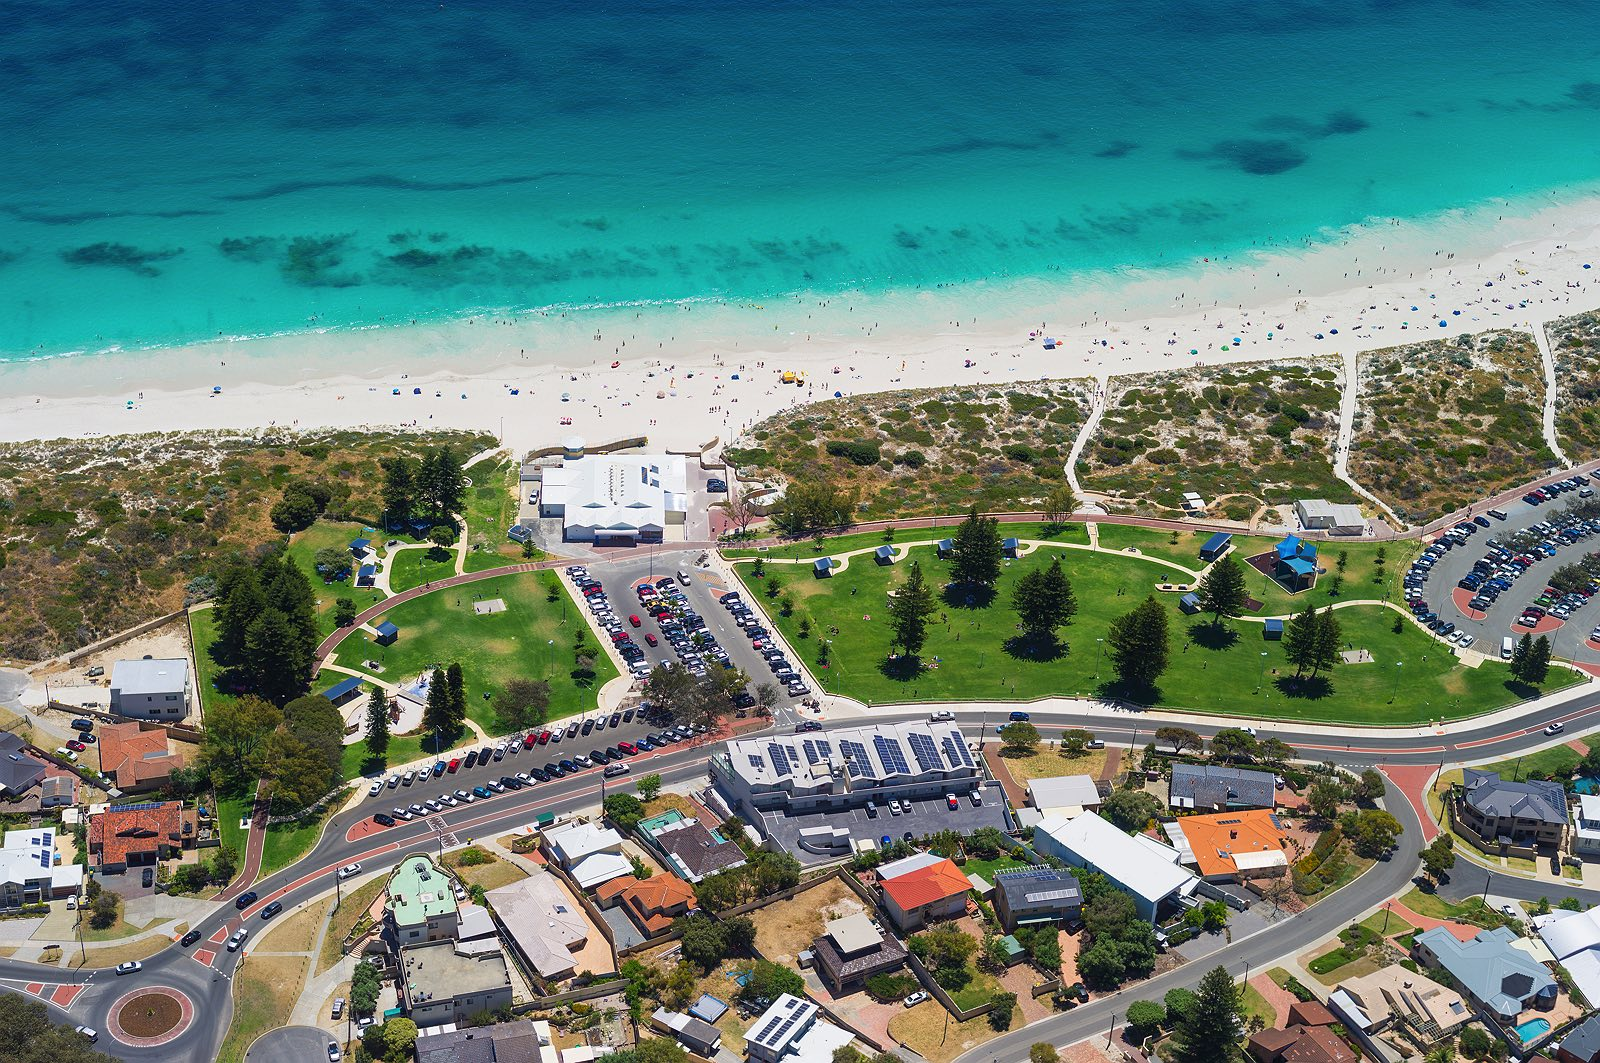 mullaloo-beach-surf-life-saving-club-aerial